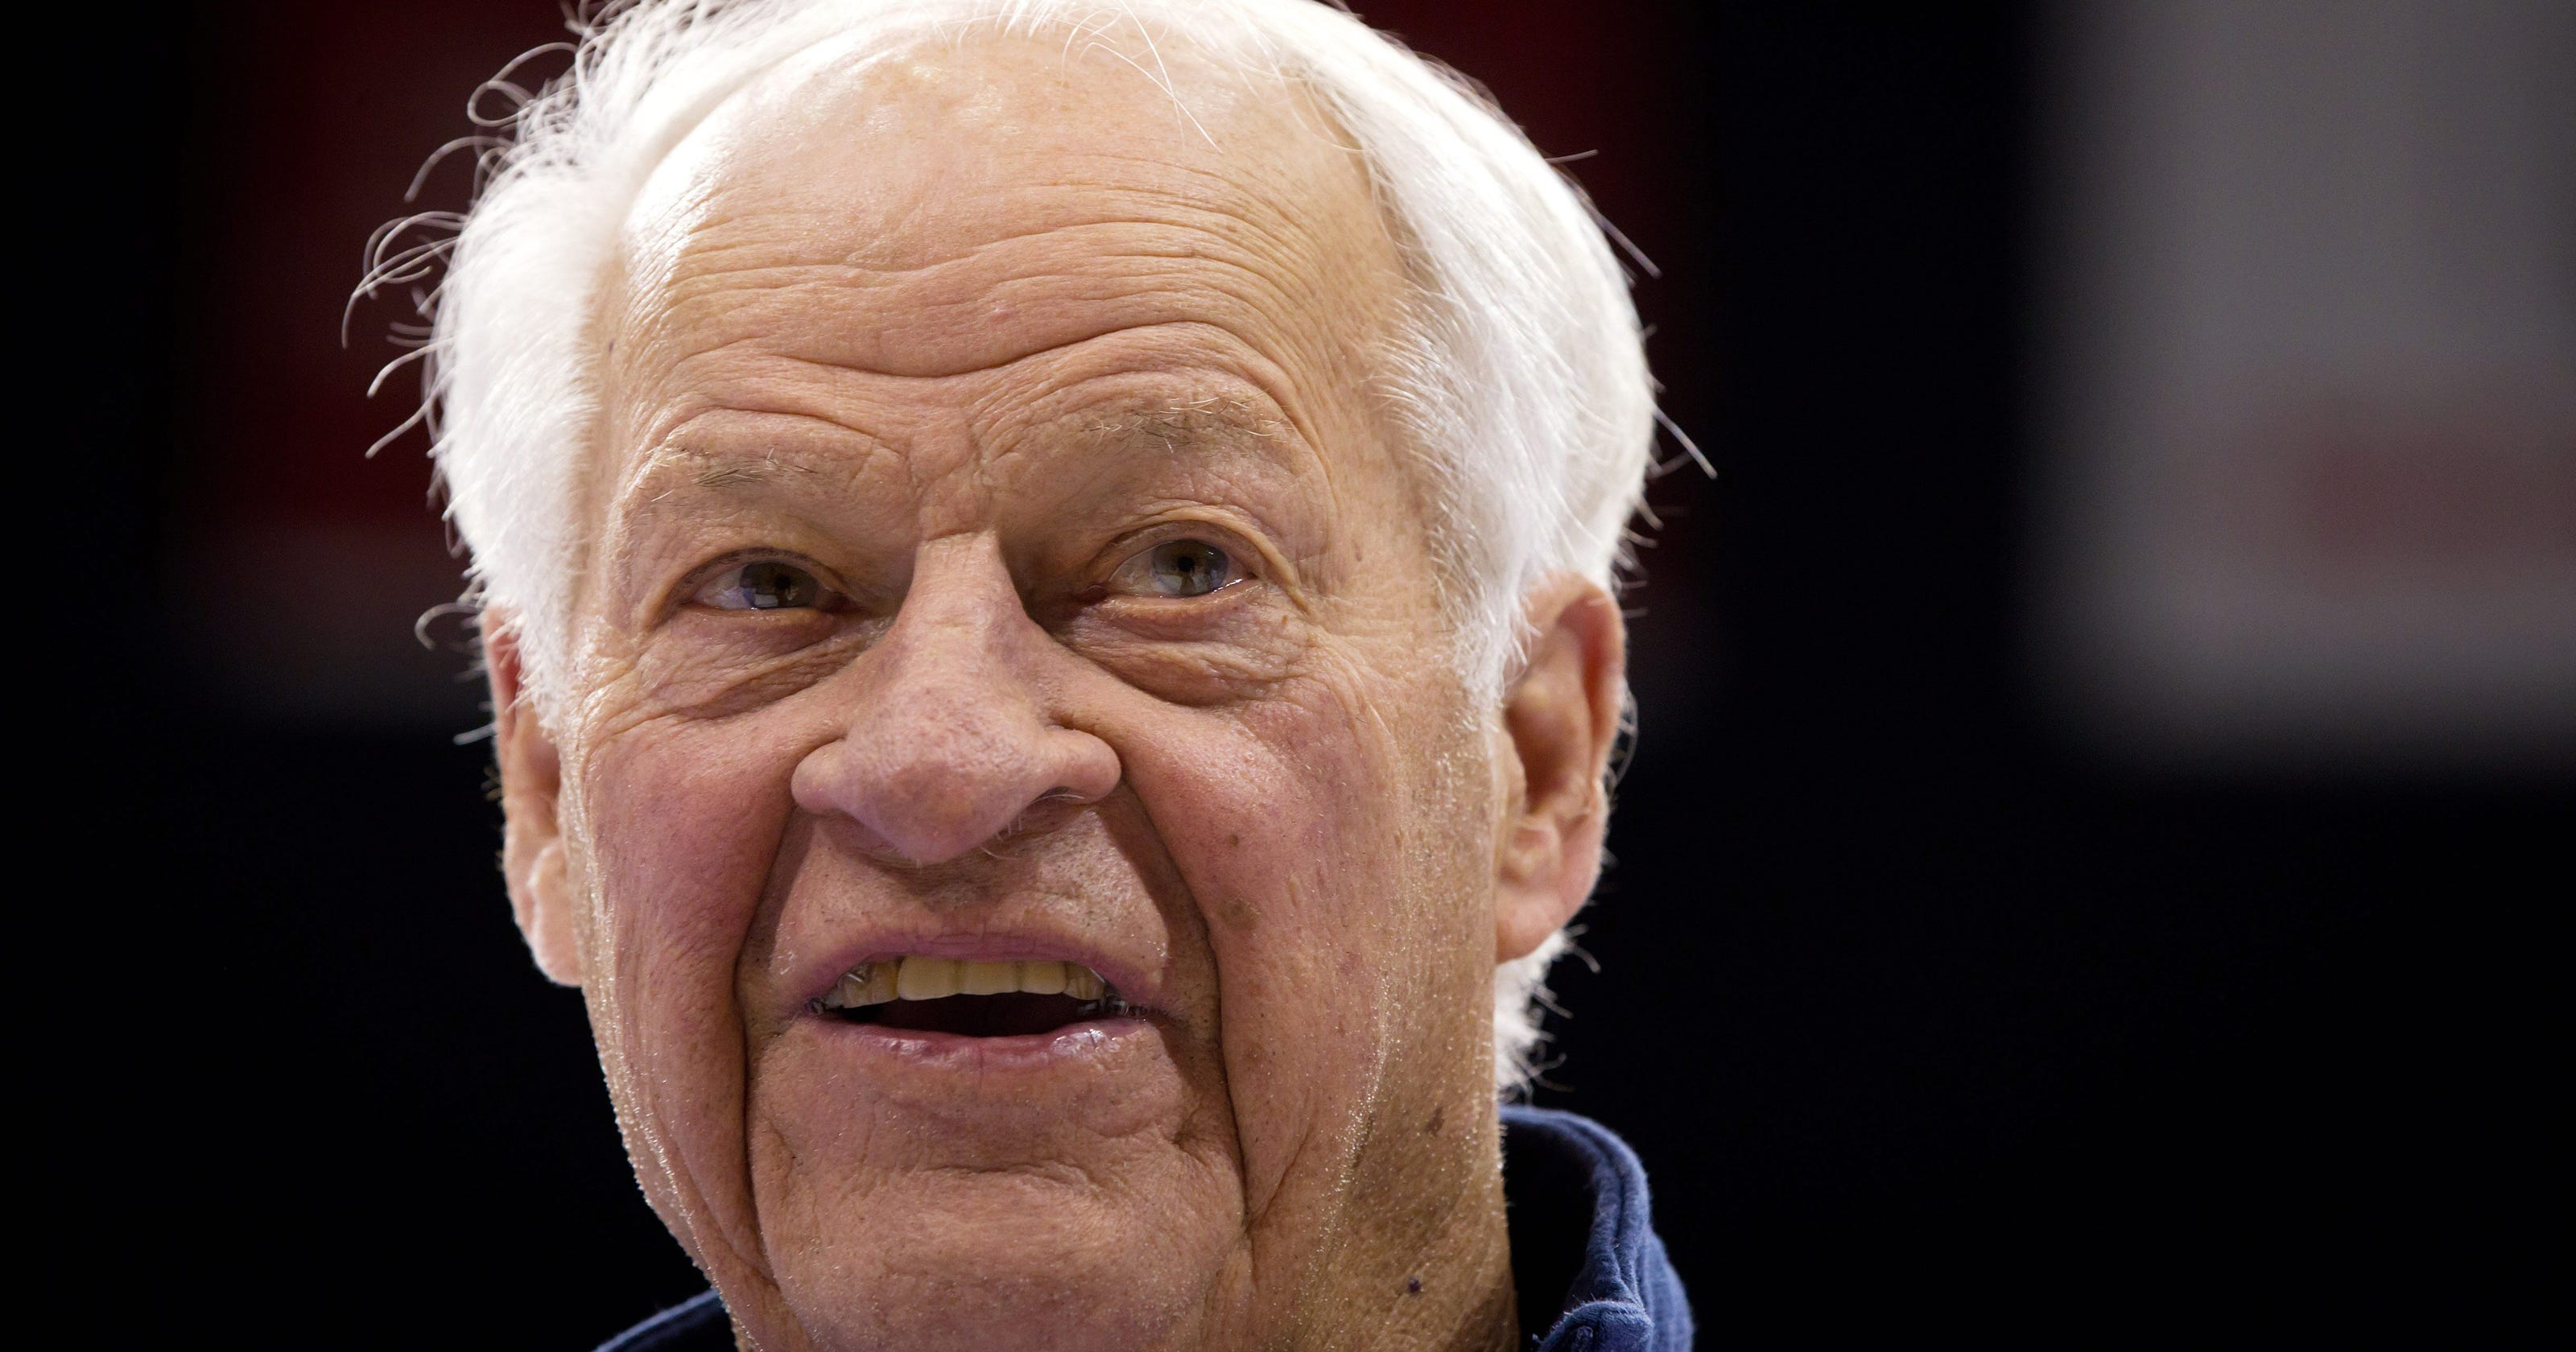 Next For Gordie Howe Move To Toledo Possible Joe Louis Arena Visit